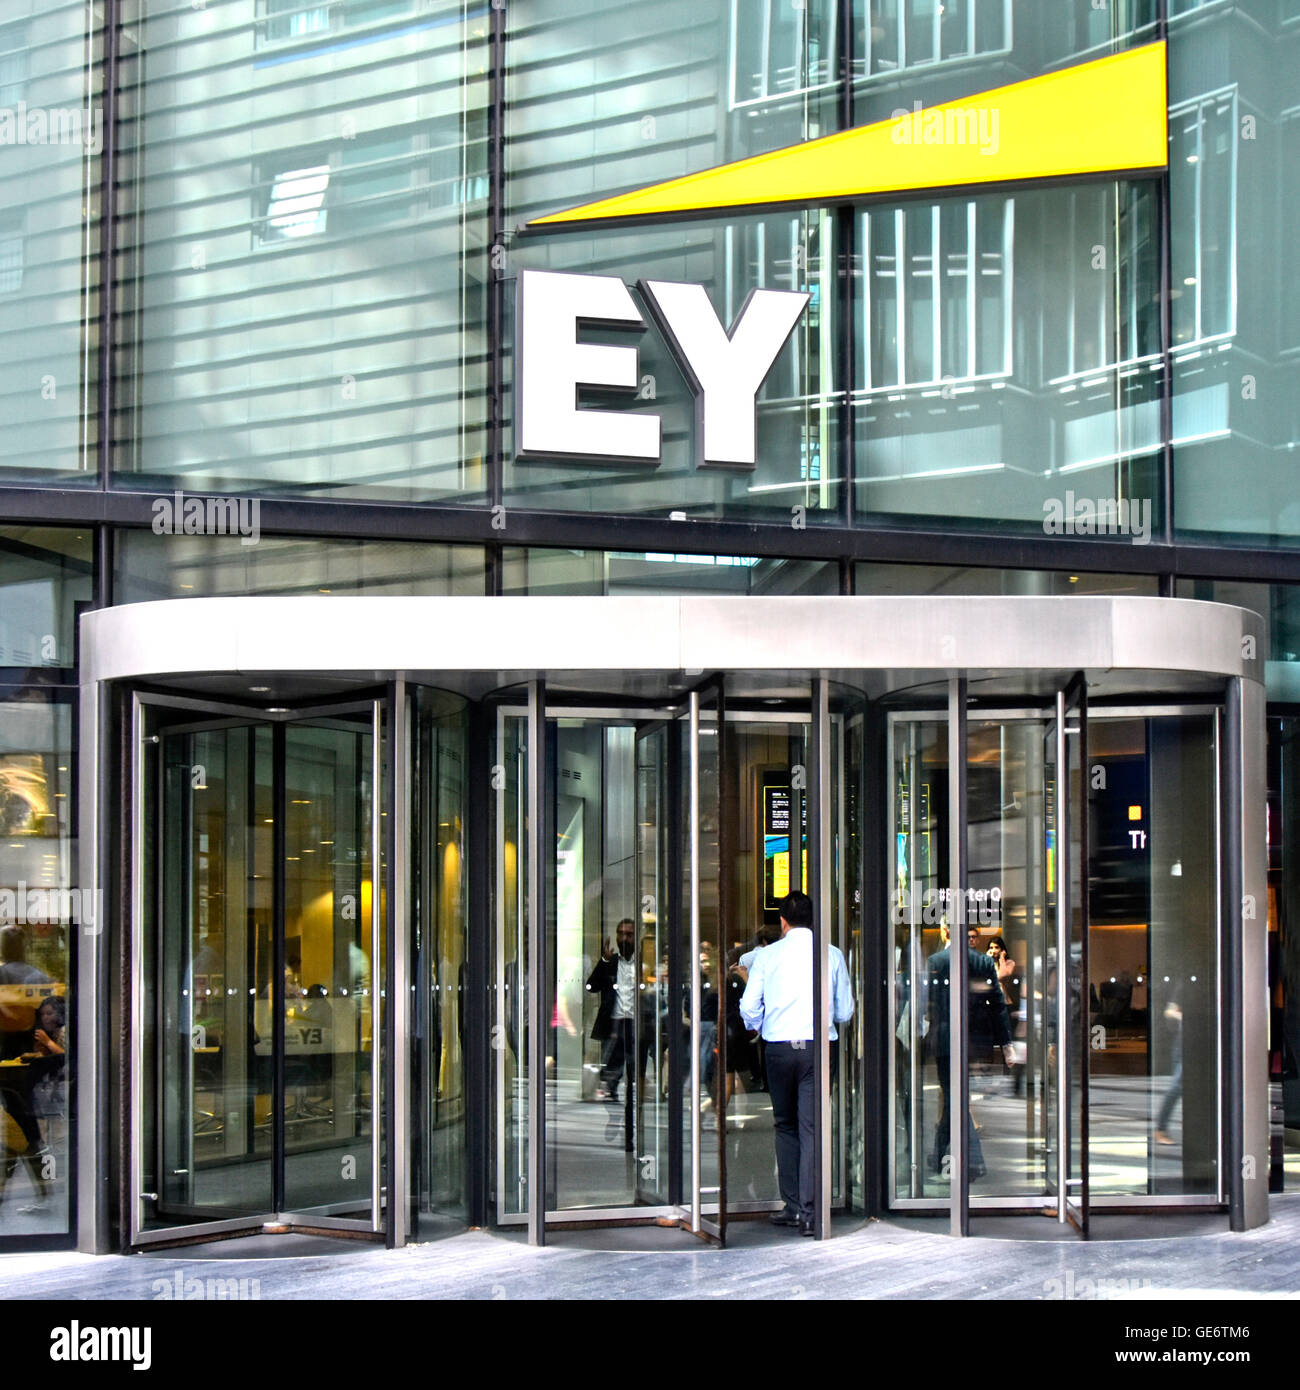 london office revolving door entrance with ernst u0026 young logo